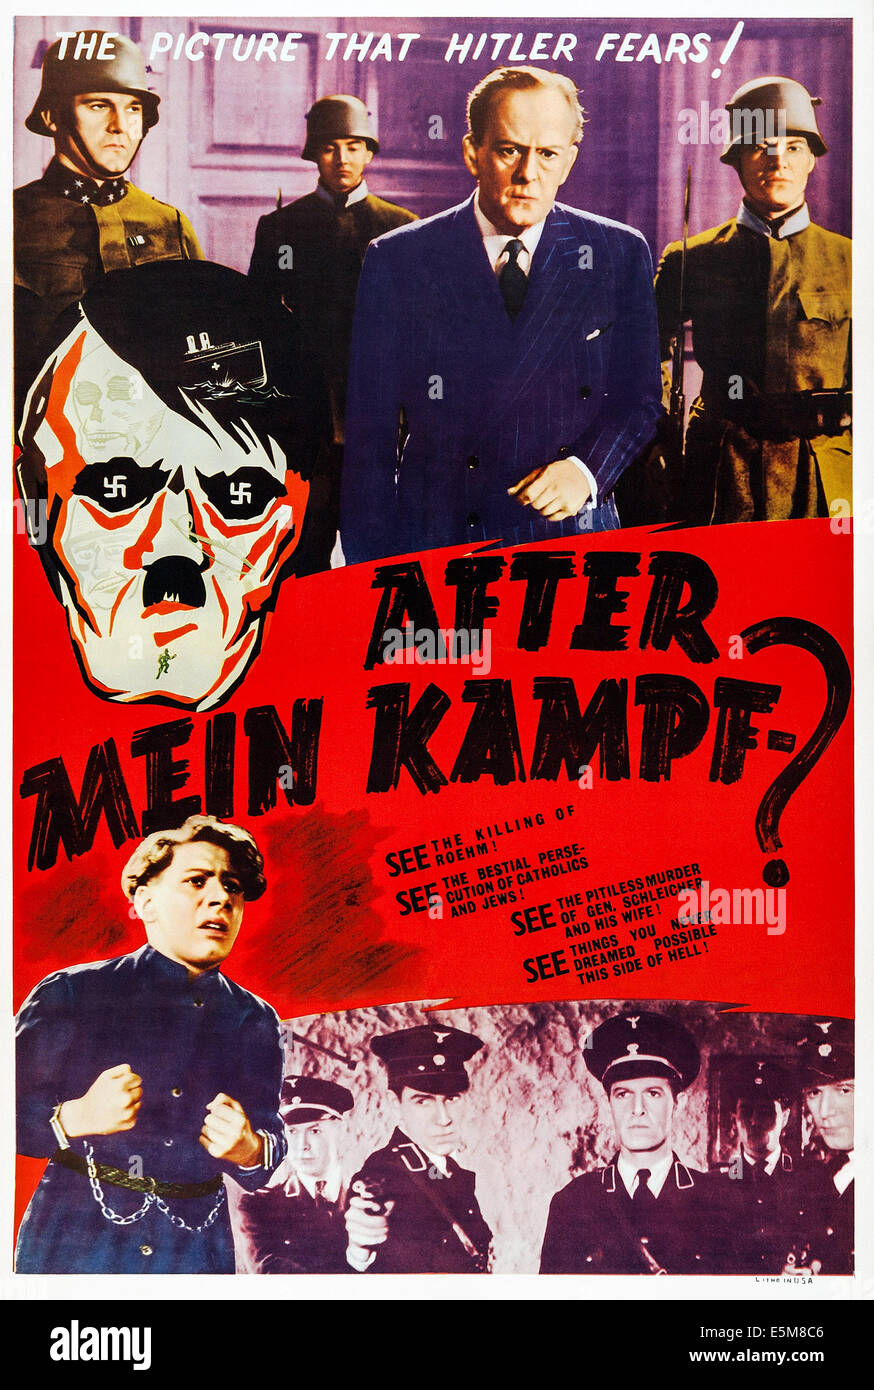 AFTER MEIN KAMPF?, US poster, 1940 - Stock Image